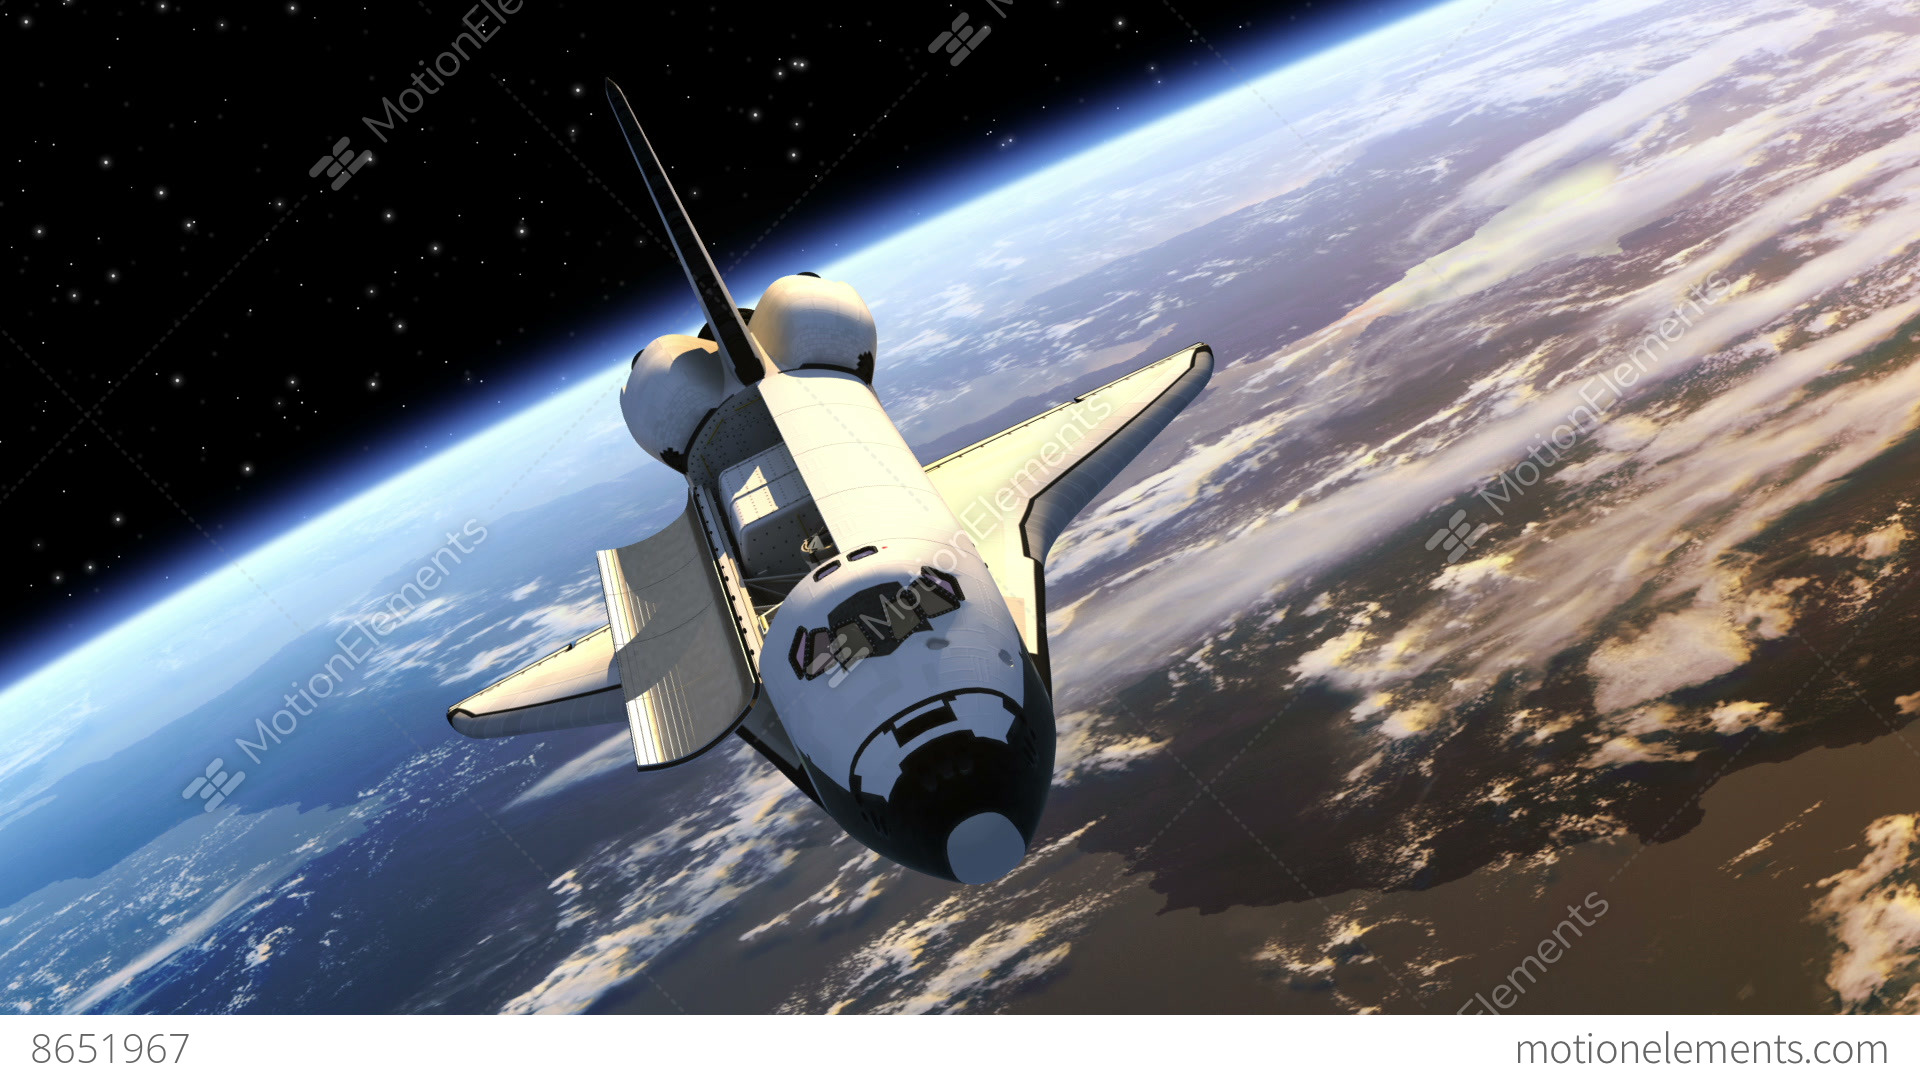 space shuttle challenger payload - photo #15